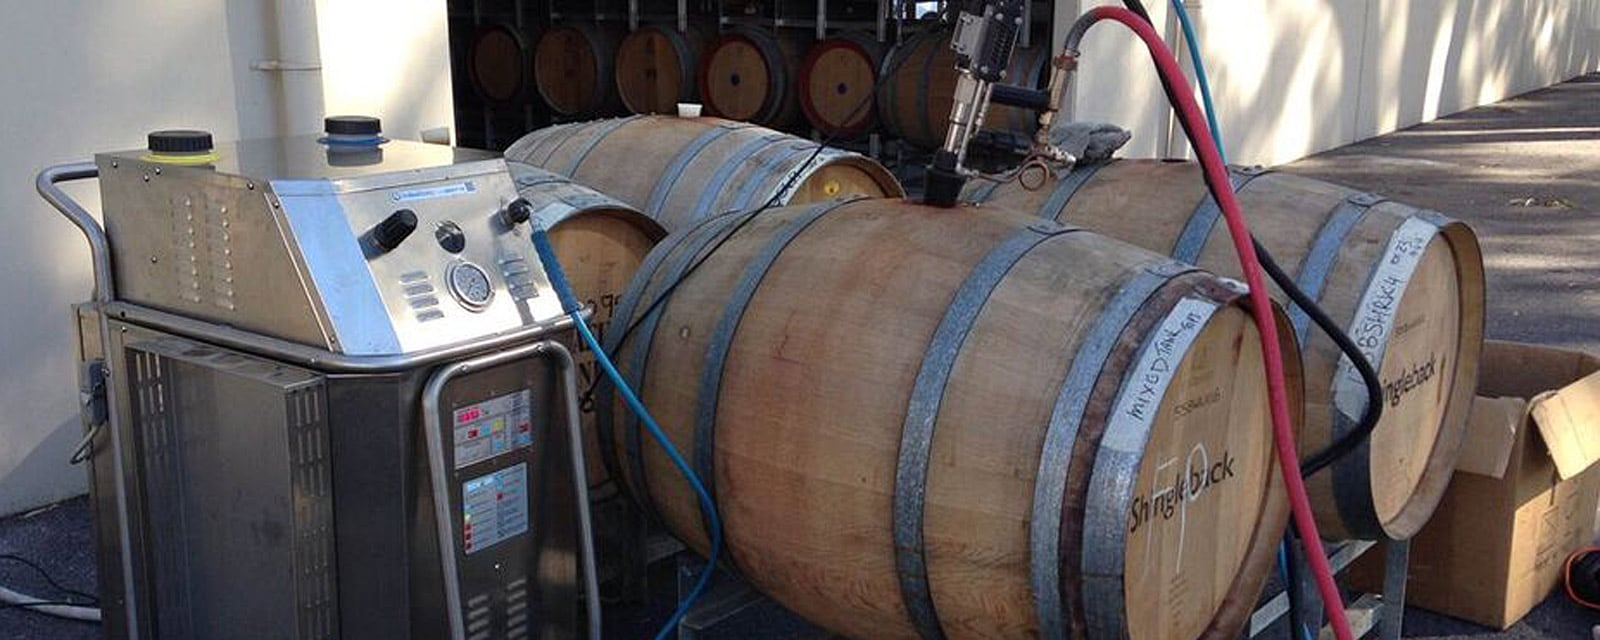 "high pressure steam vapour wine barrel cleaning machine"" alt=""our steam vapour machines clean wine barrels better than anything else available, without using chemicals or wasting water"